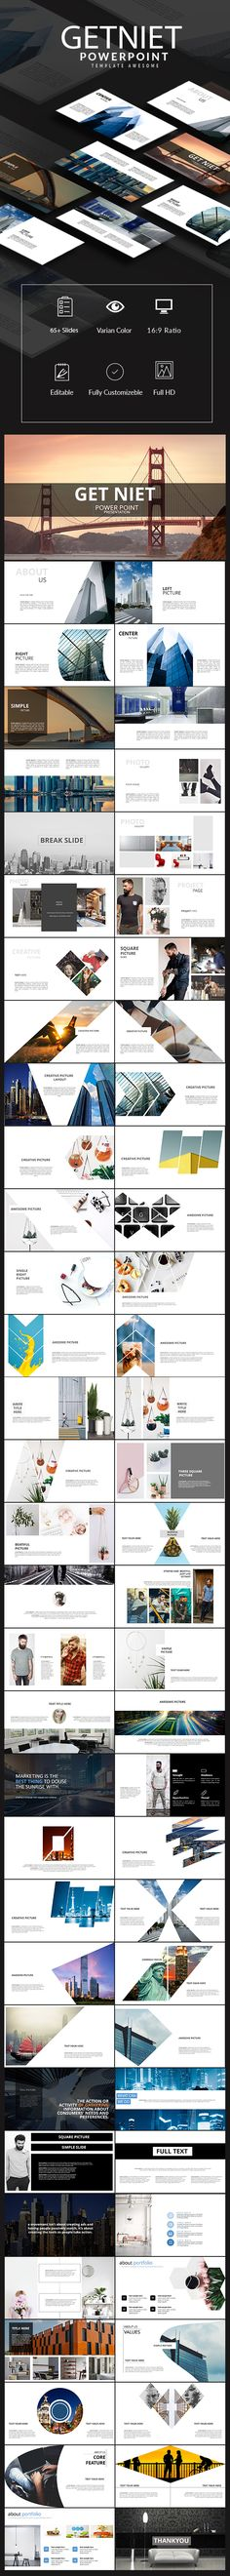 Getniet Power Point Template  #ecommerce #advertisement • Download ➝ https://graphicriver.net/item/getniet-power-point-template/18065355?ref=pxcr